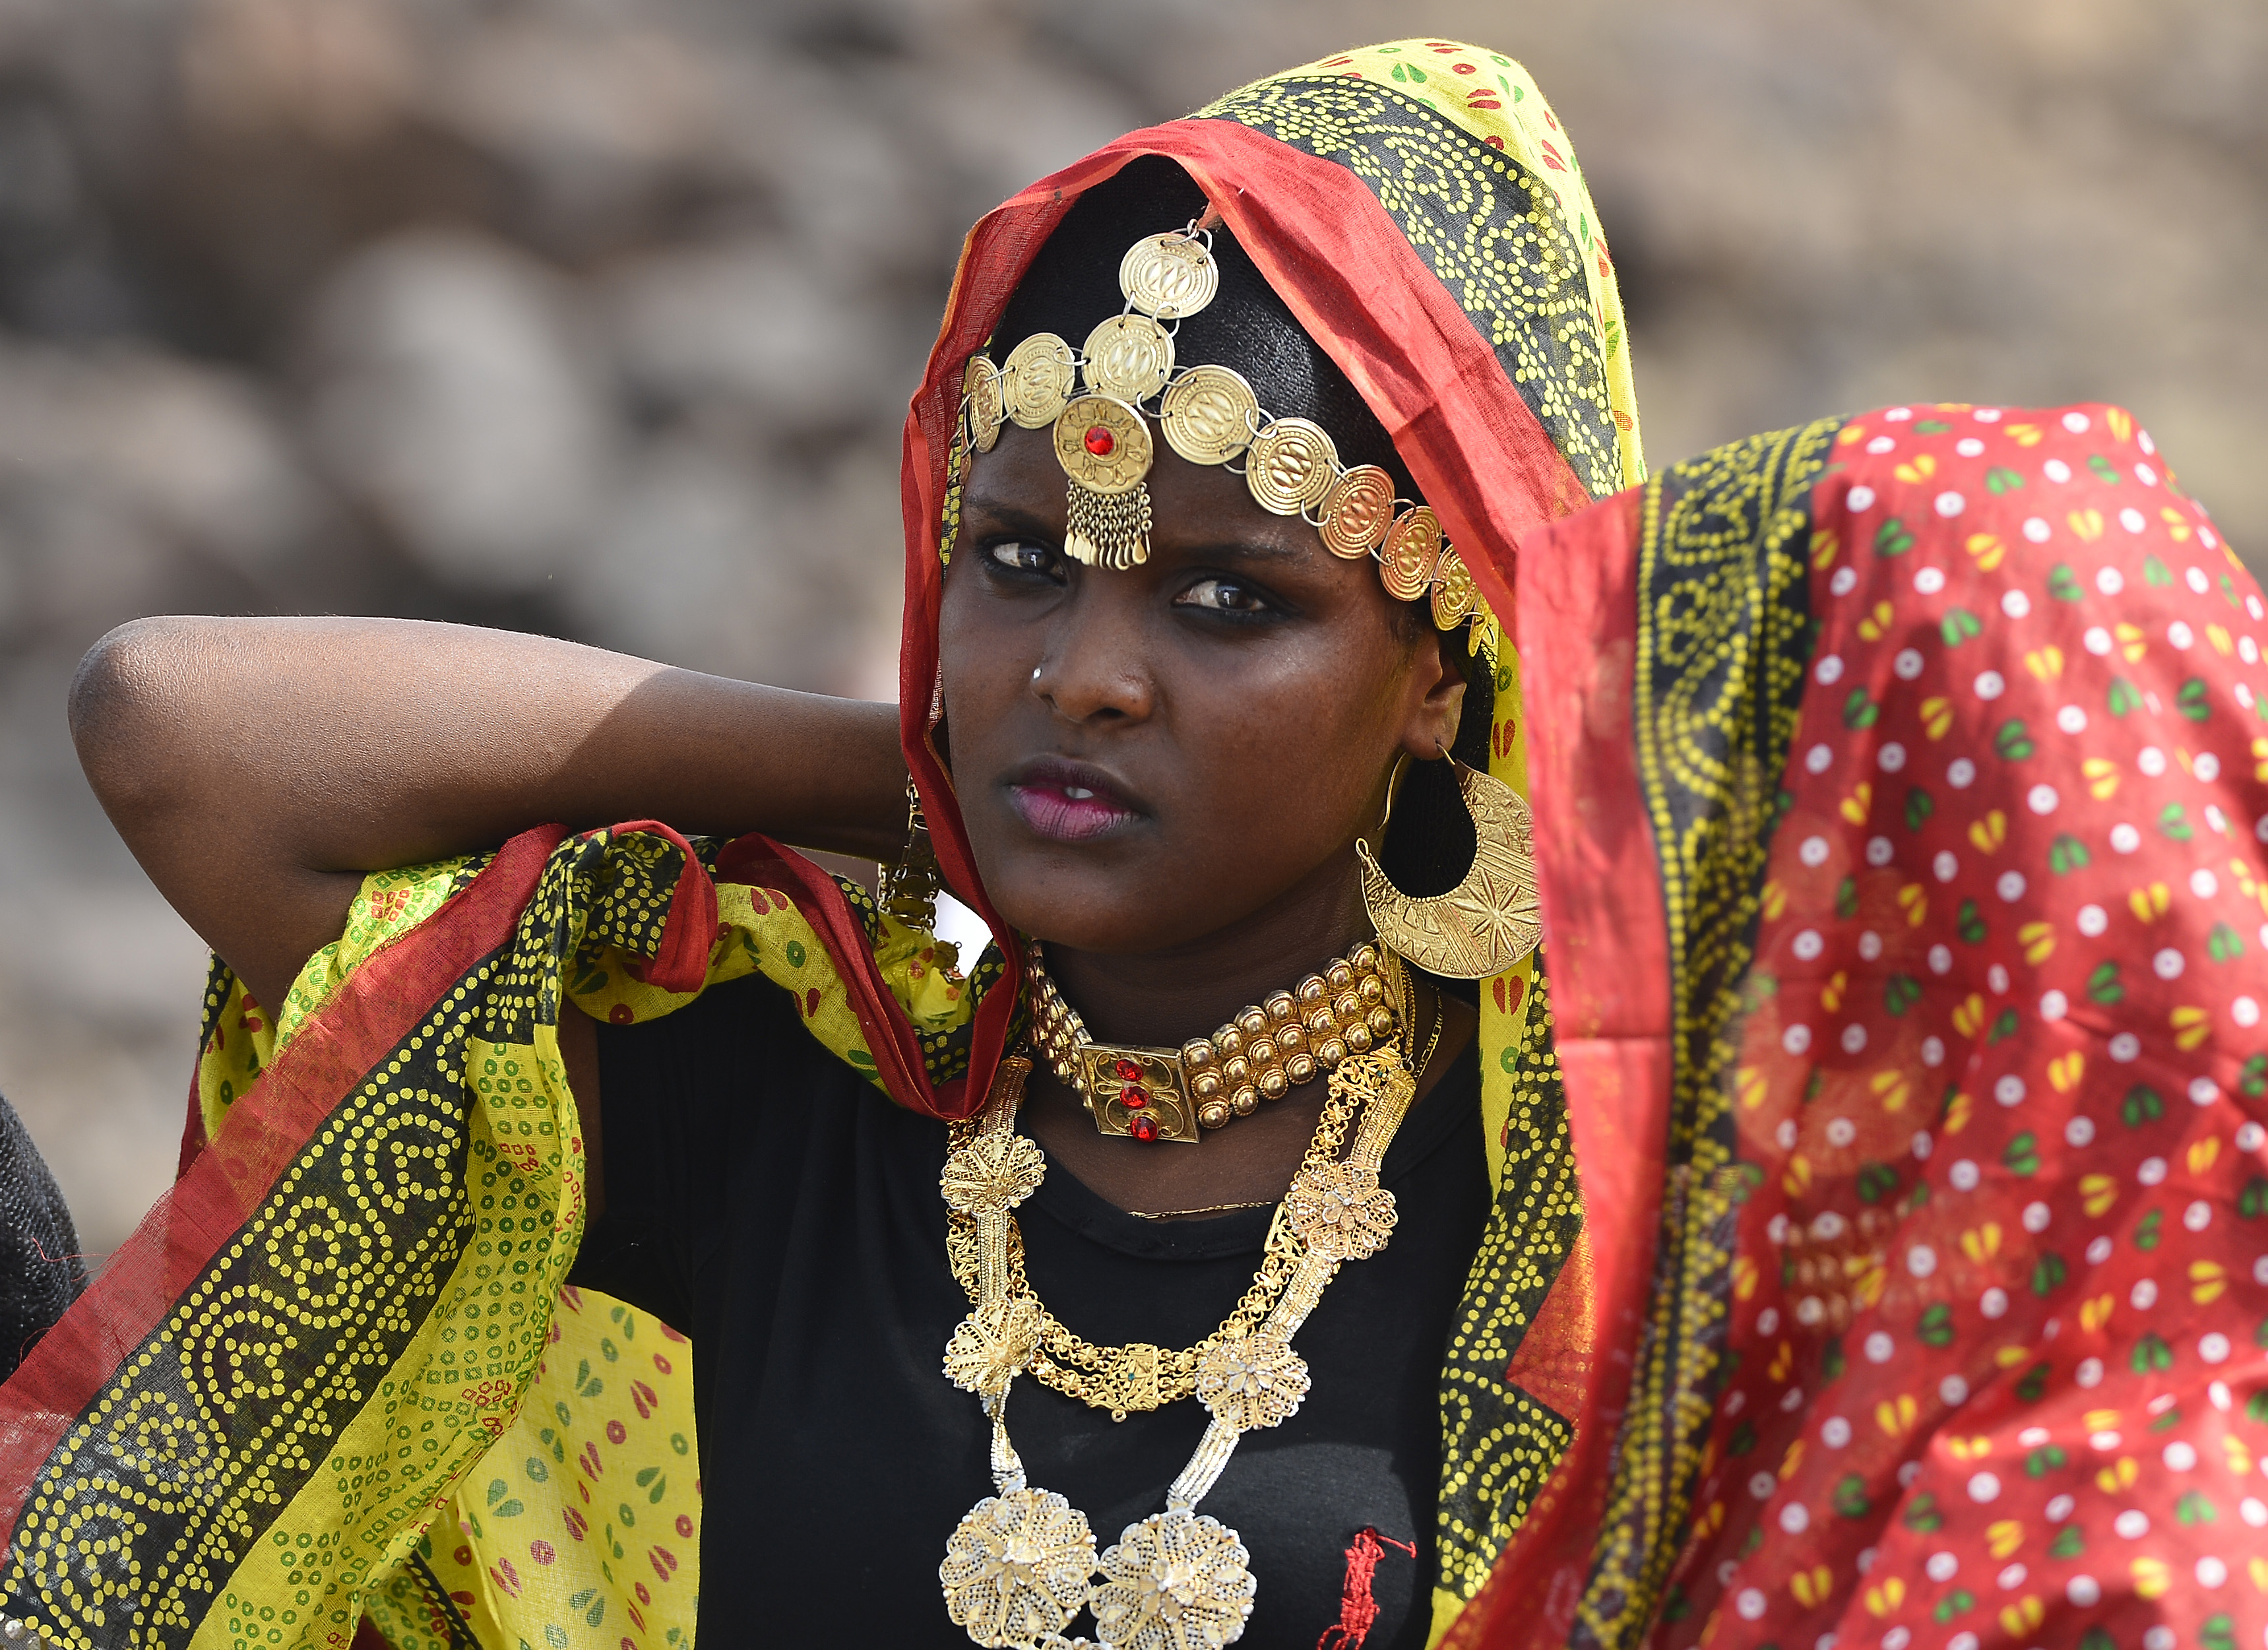 An Afar woman prepares to dance during the 21st Induction Ceremony of the Sultan of Gobaad in Dikhil, Djibouti, May 22, 2015. The Afar tribe is one of two main ethnic groups in Djibouti, shaping their historical customs and culture for hundreds of years. (U.S. Air Force photo by Senior Airman Nesha Humes)